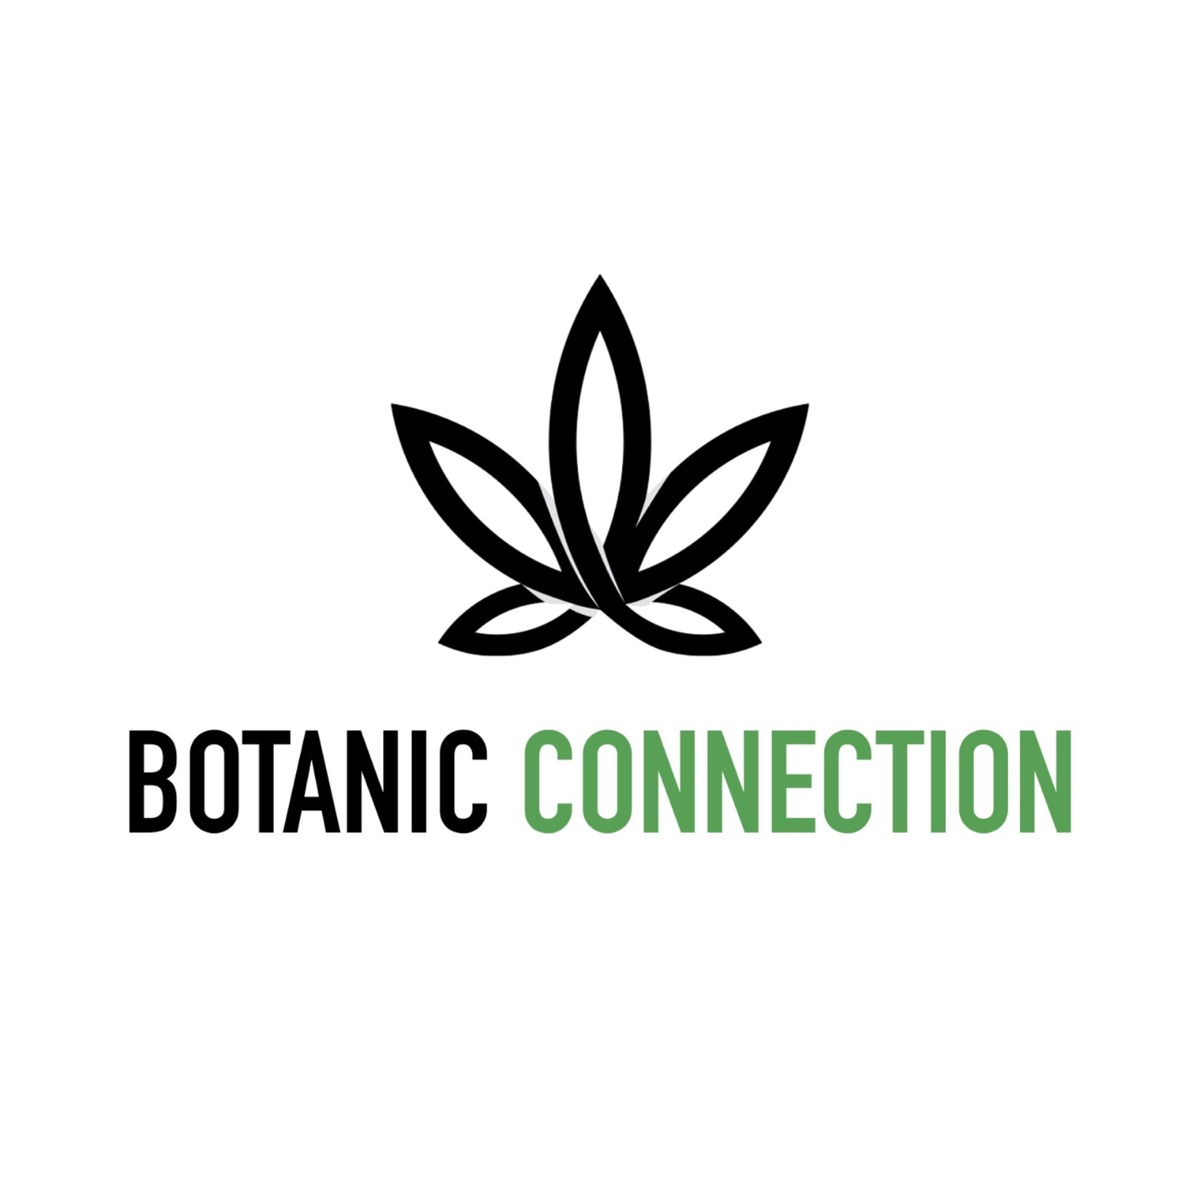 Botanic Connection